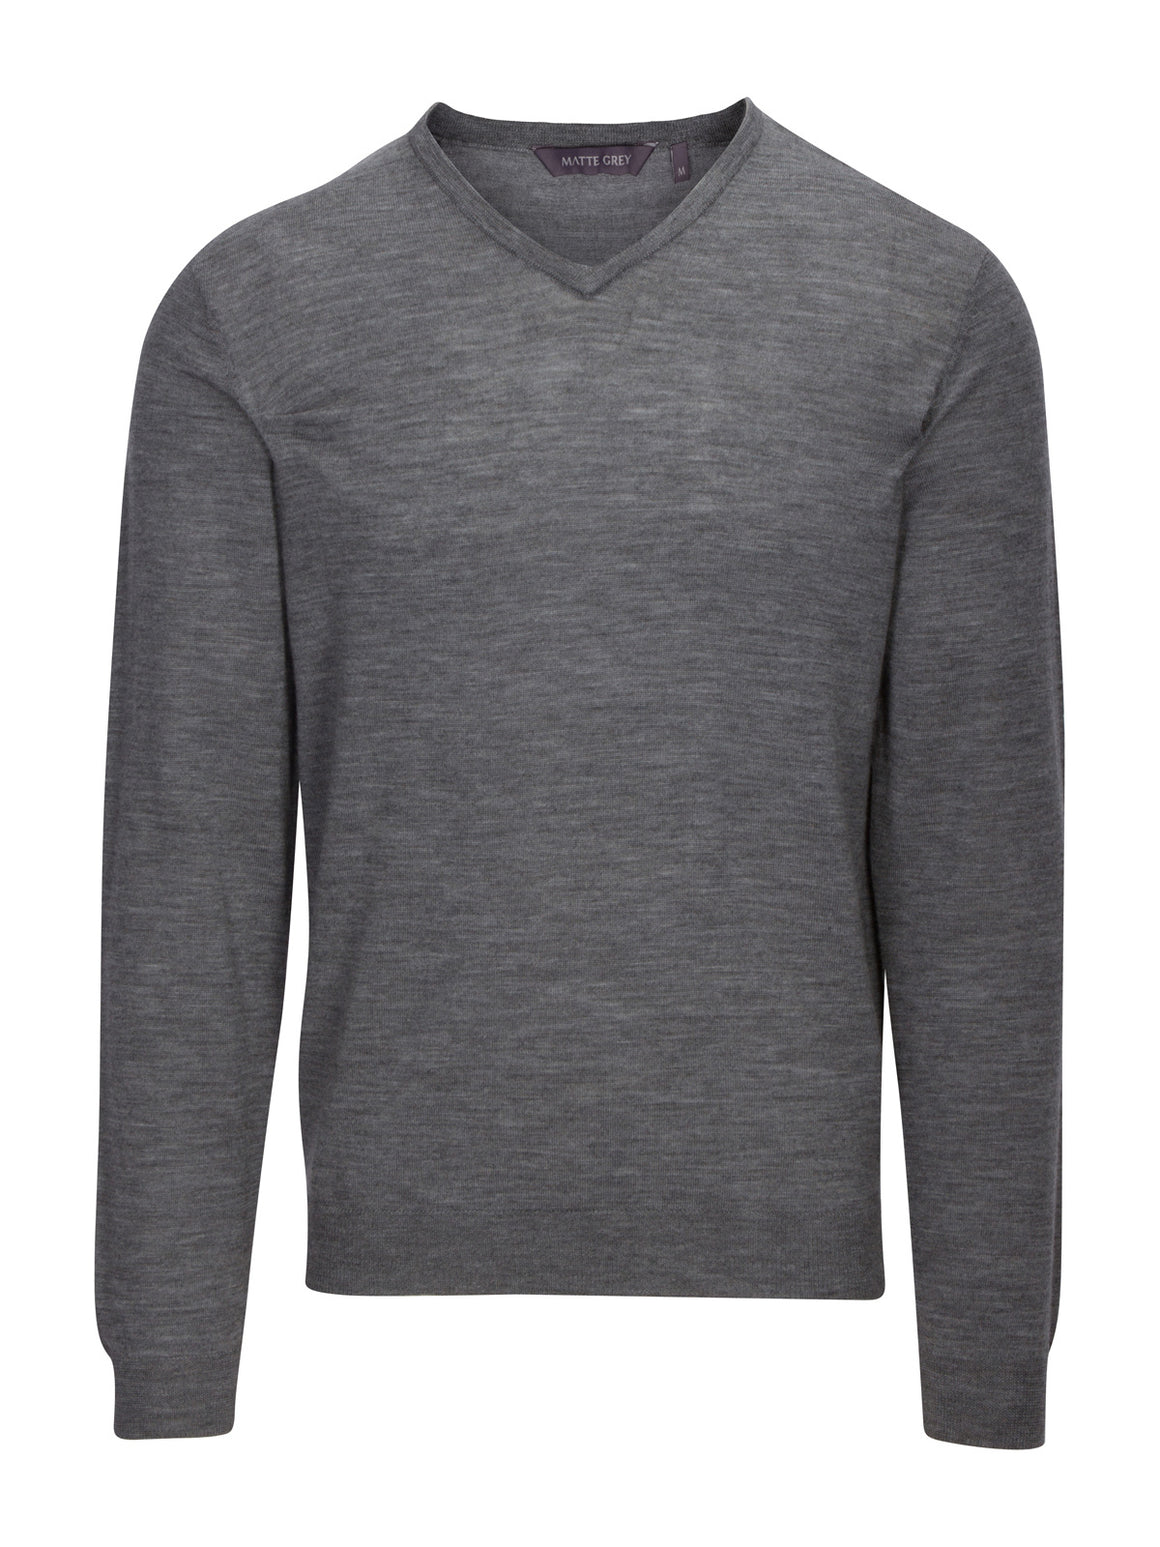 Ridge Long Sleeve V-Neck Sweater - Jet Grey